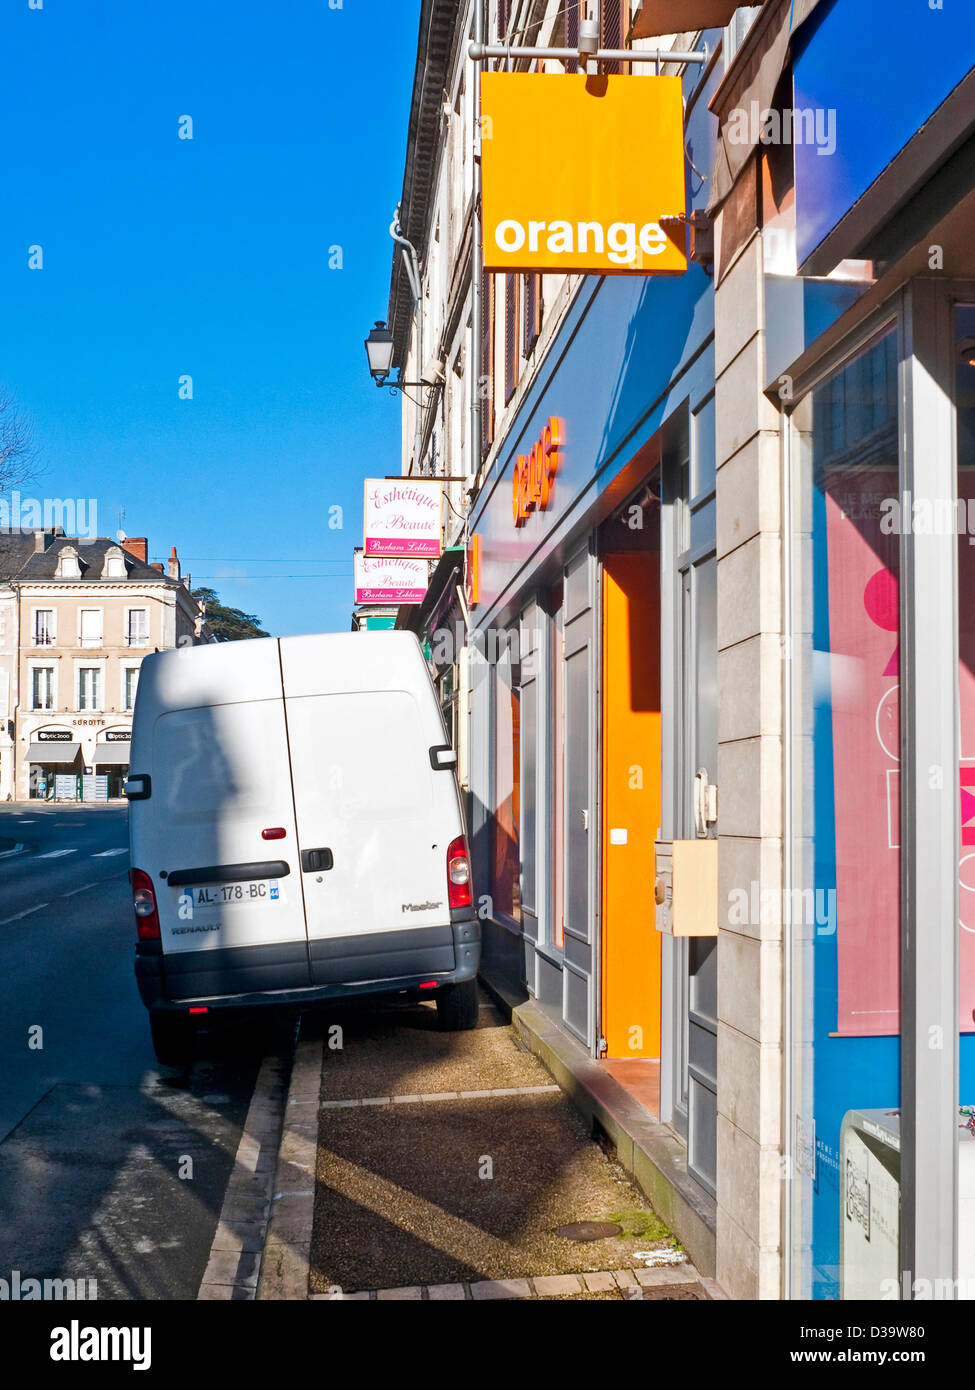 White van badly parked blocking pavement - France. Stock Photo